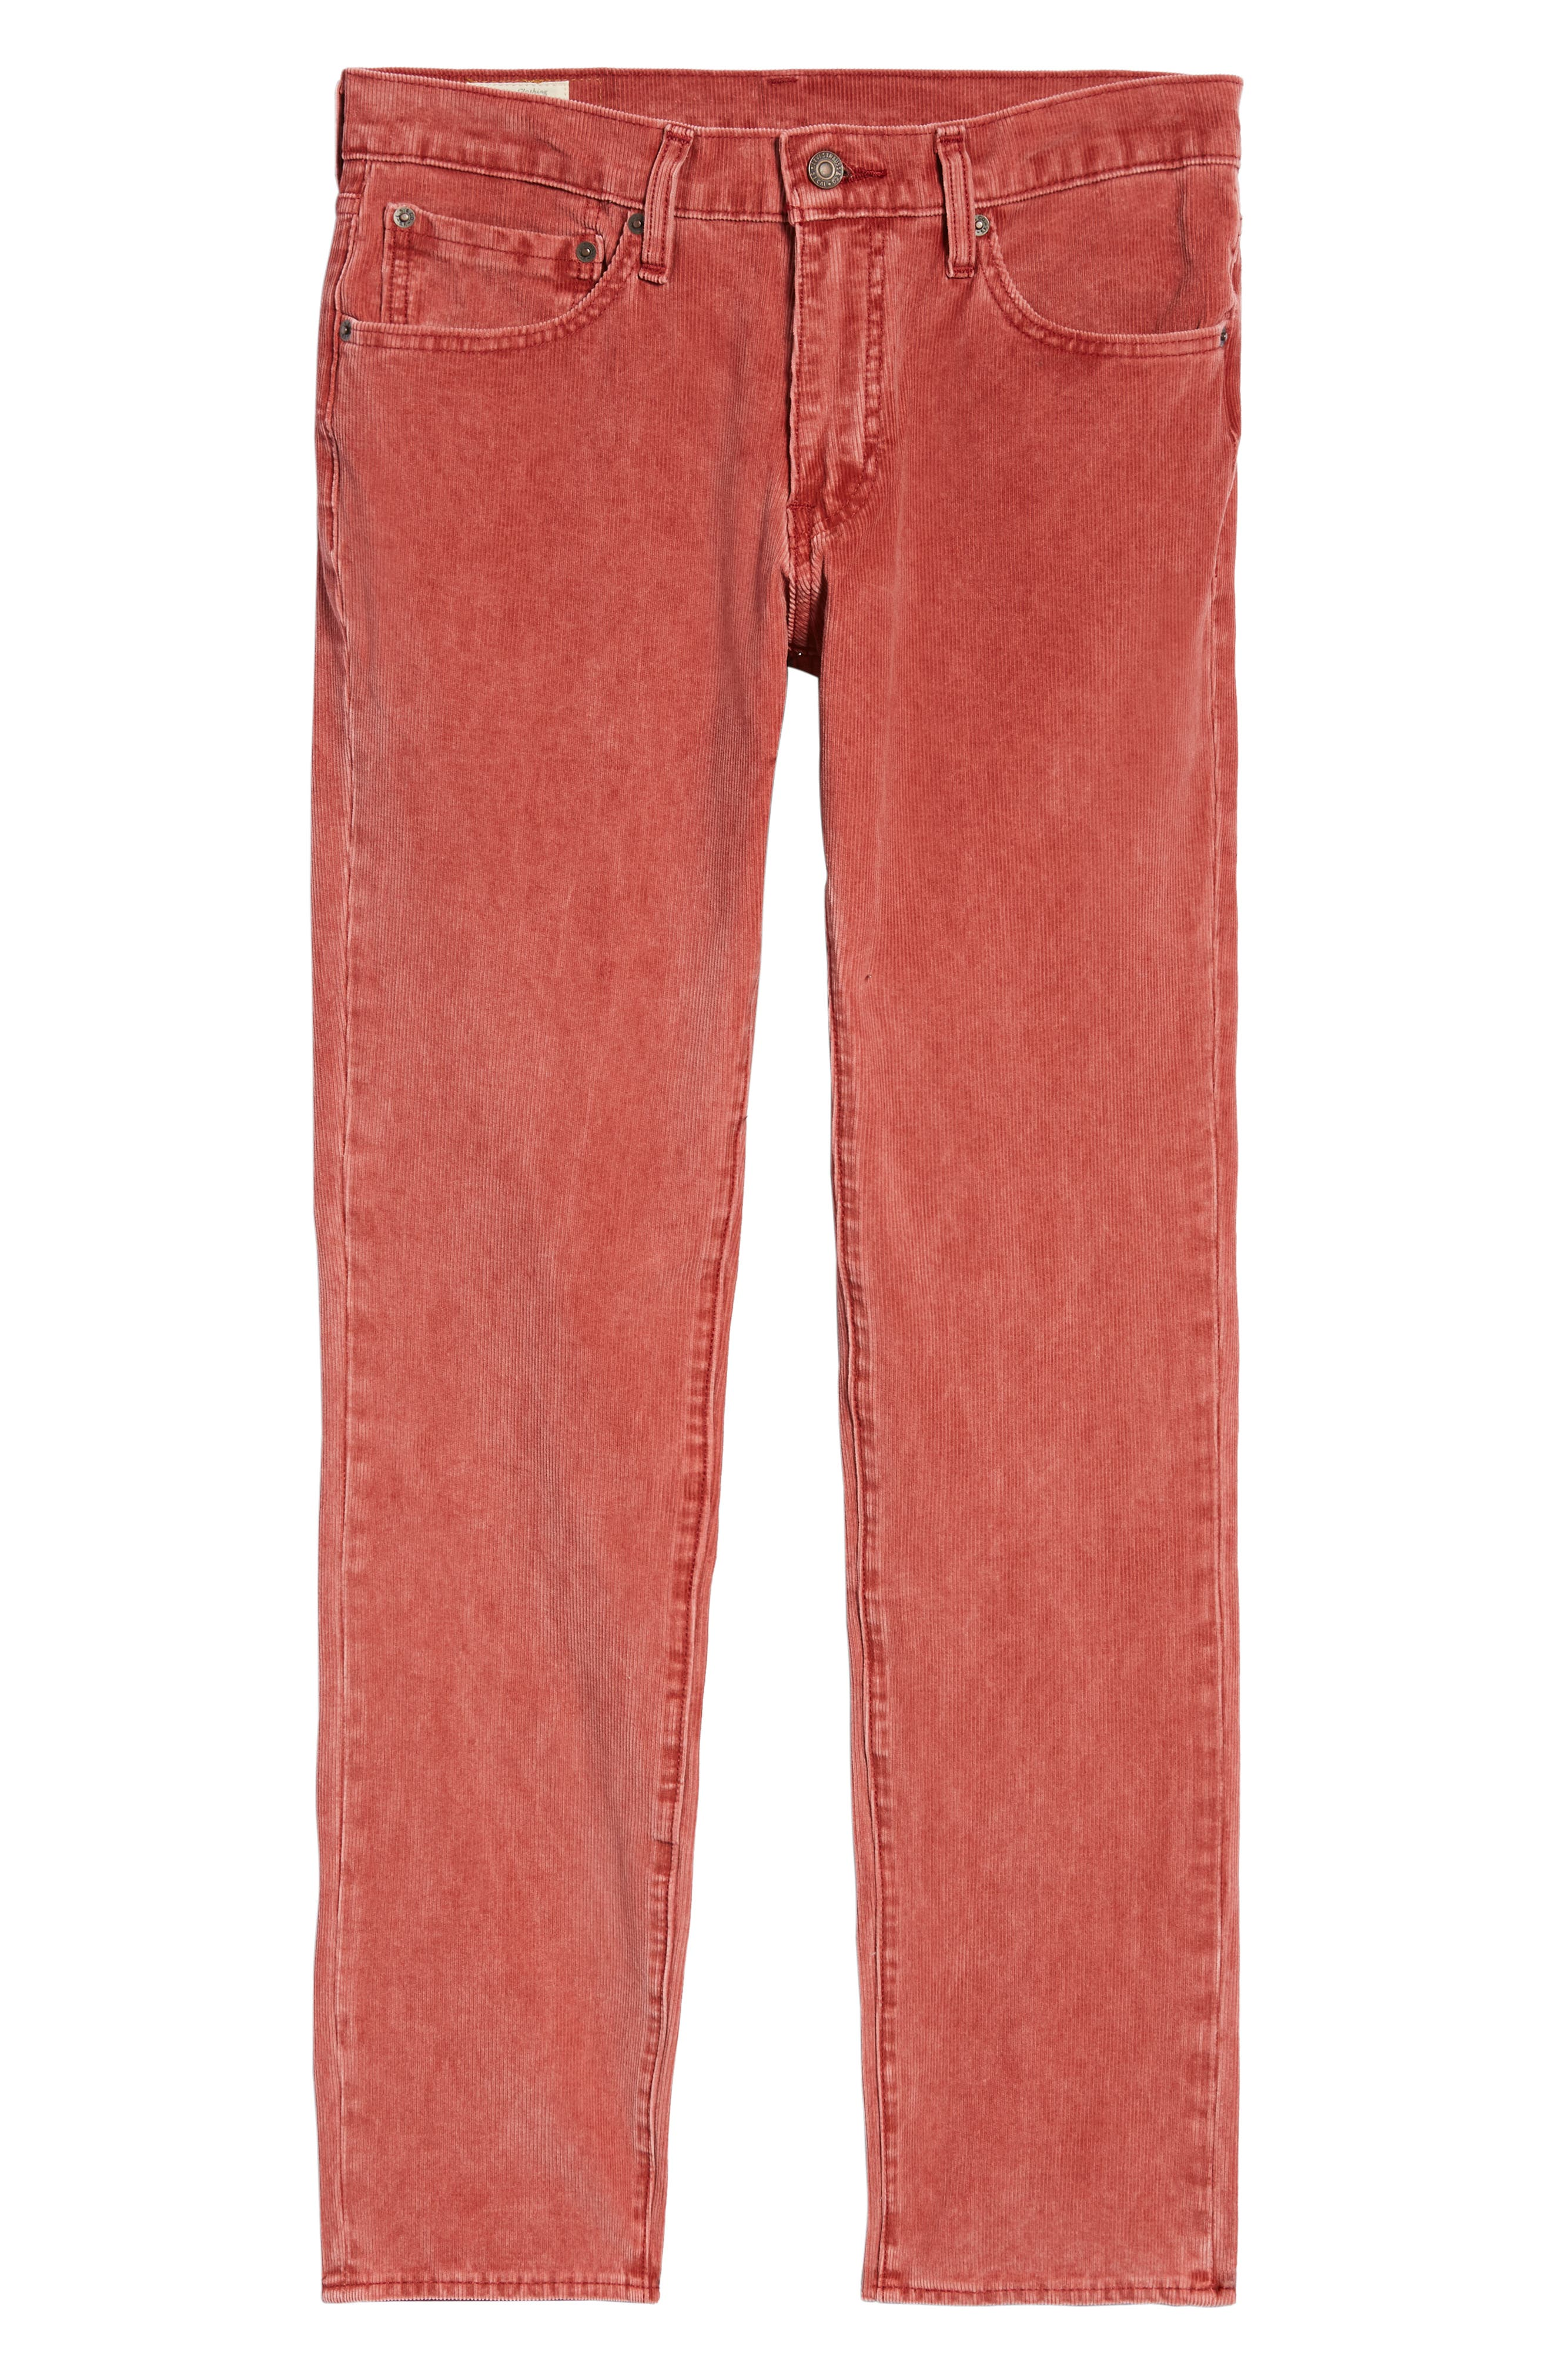 511<sup>™</sup> Slim Fit Corduroy Pants,                             Alternate thumbnail 6, color,                             RALLY RED